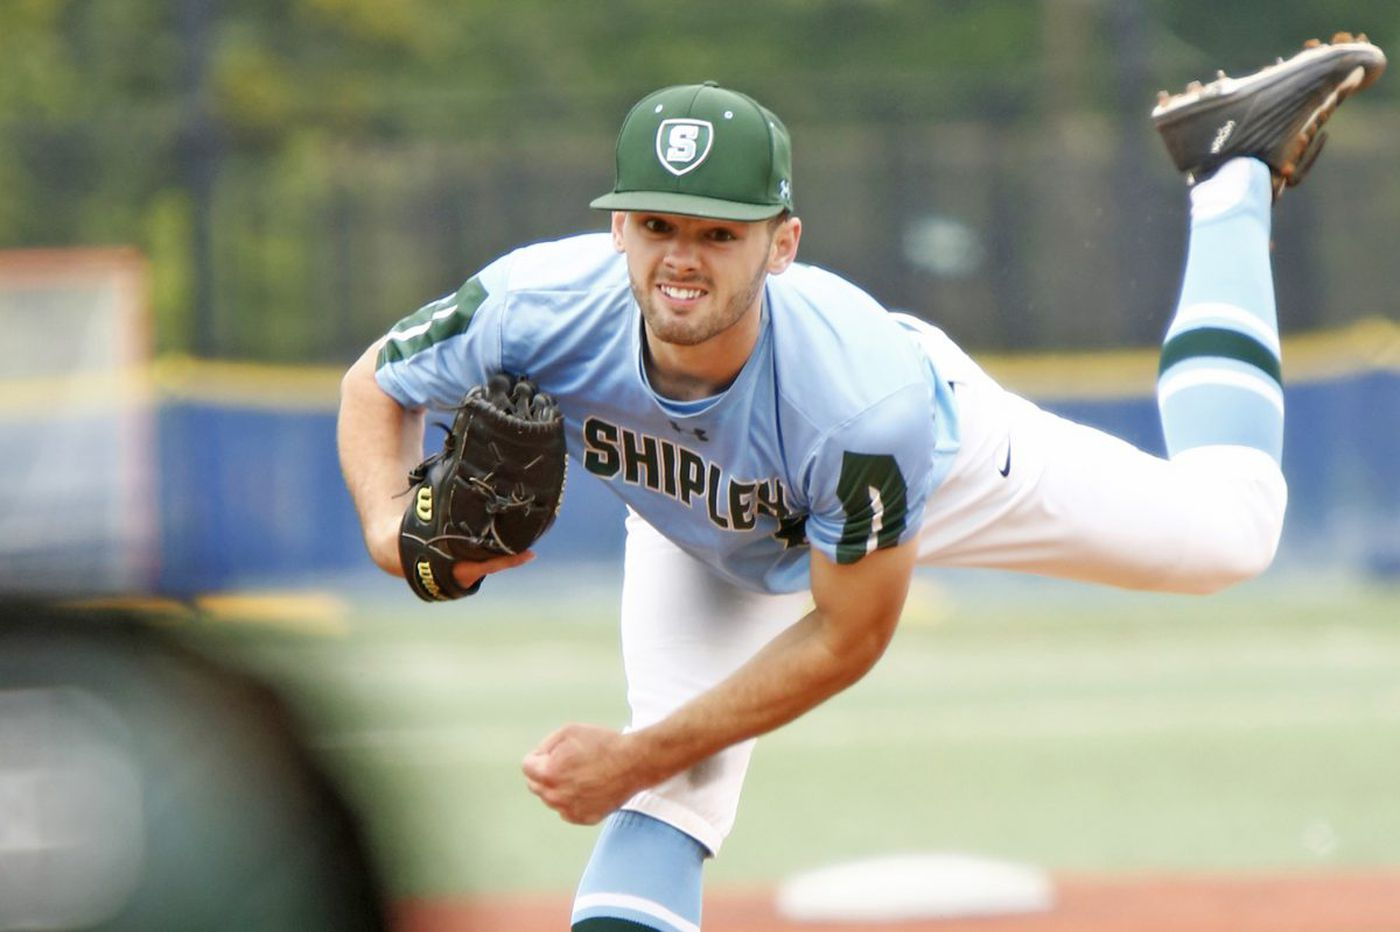 Saturday's Pa. roundup: Shipley and Friends' Central to meet in Friends League final